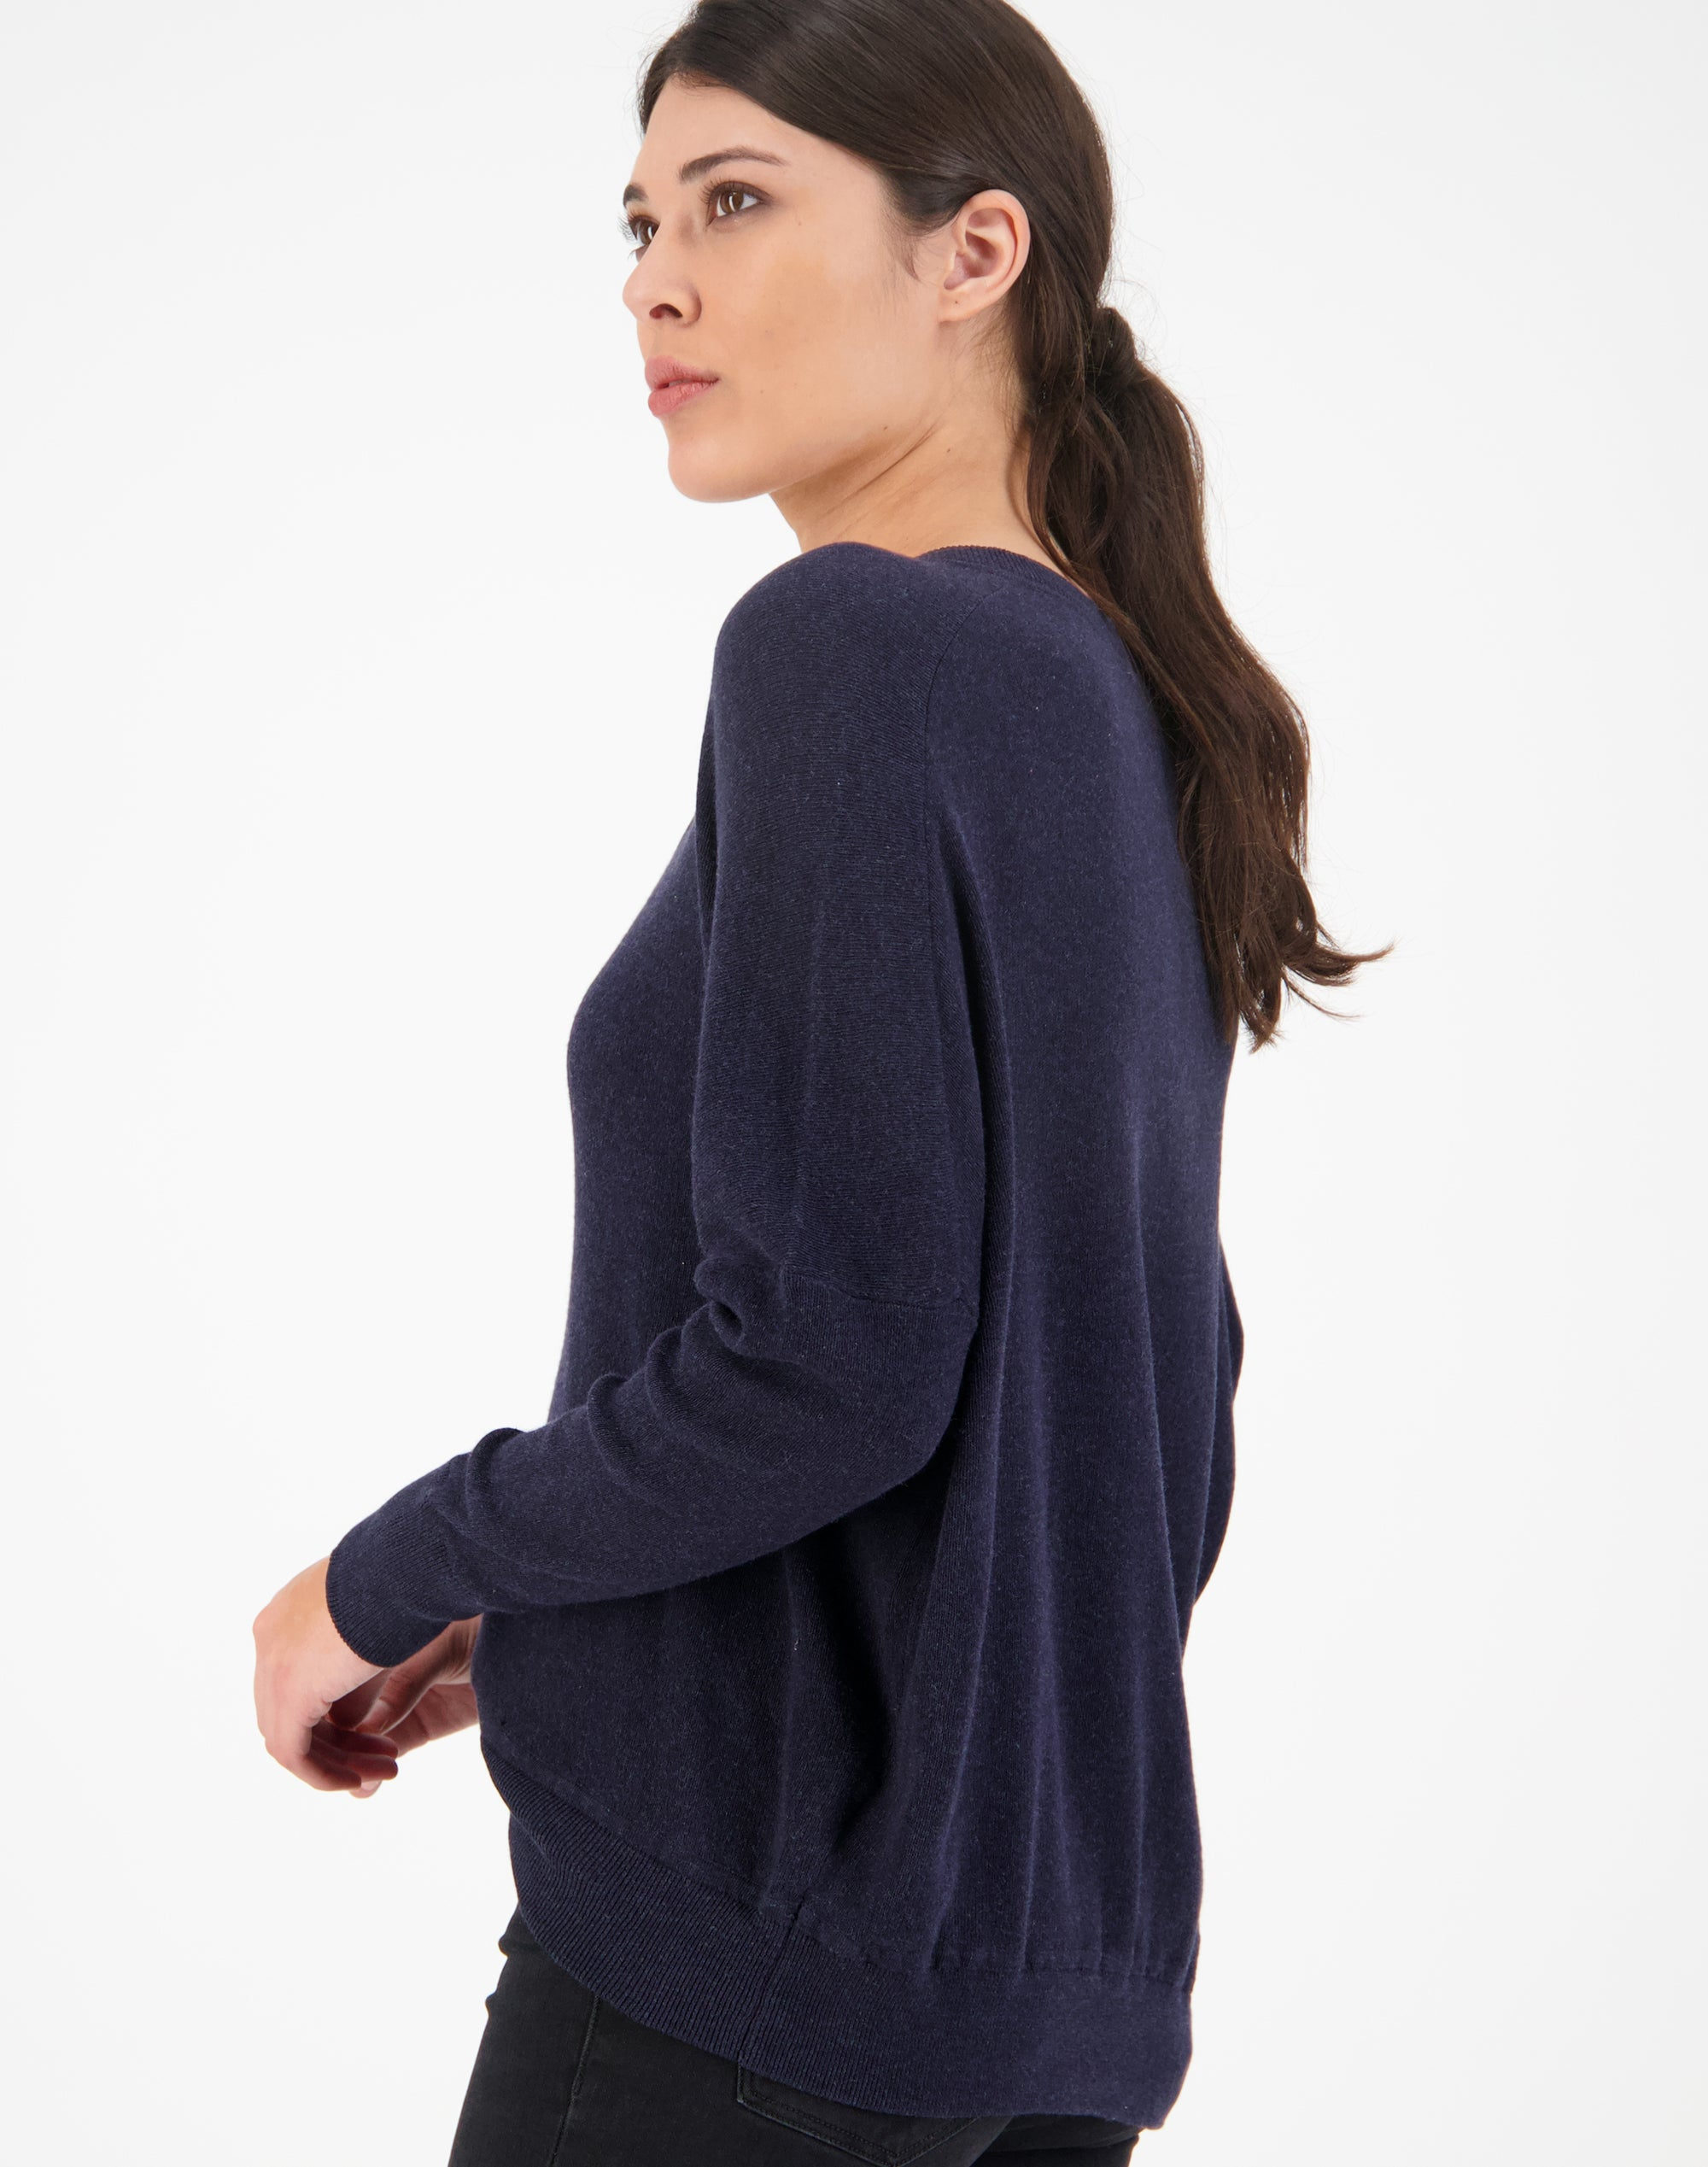 Deep V Relaxed Sweater